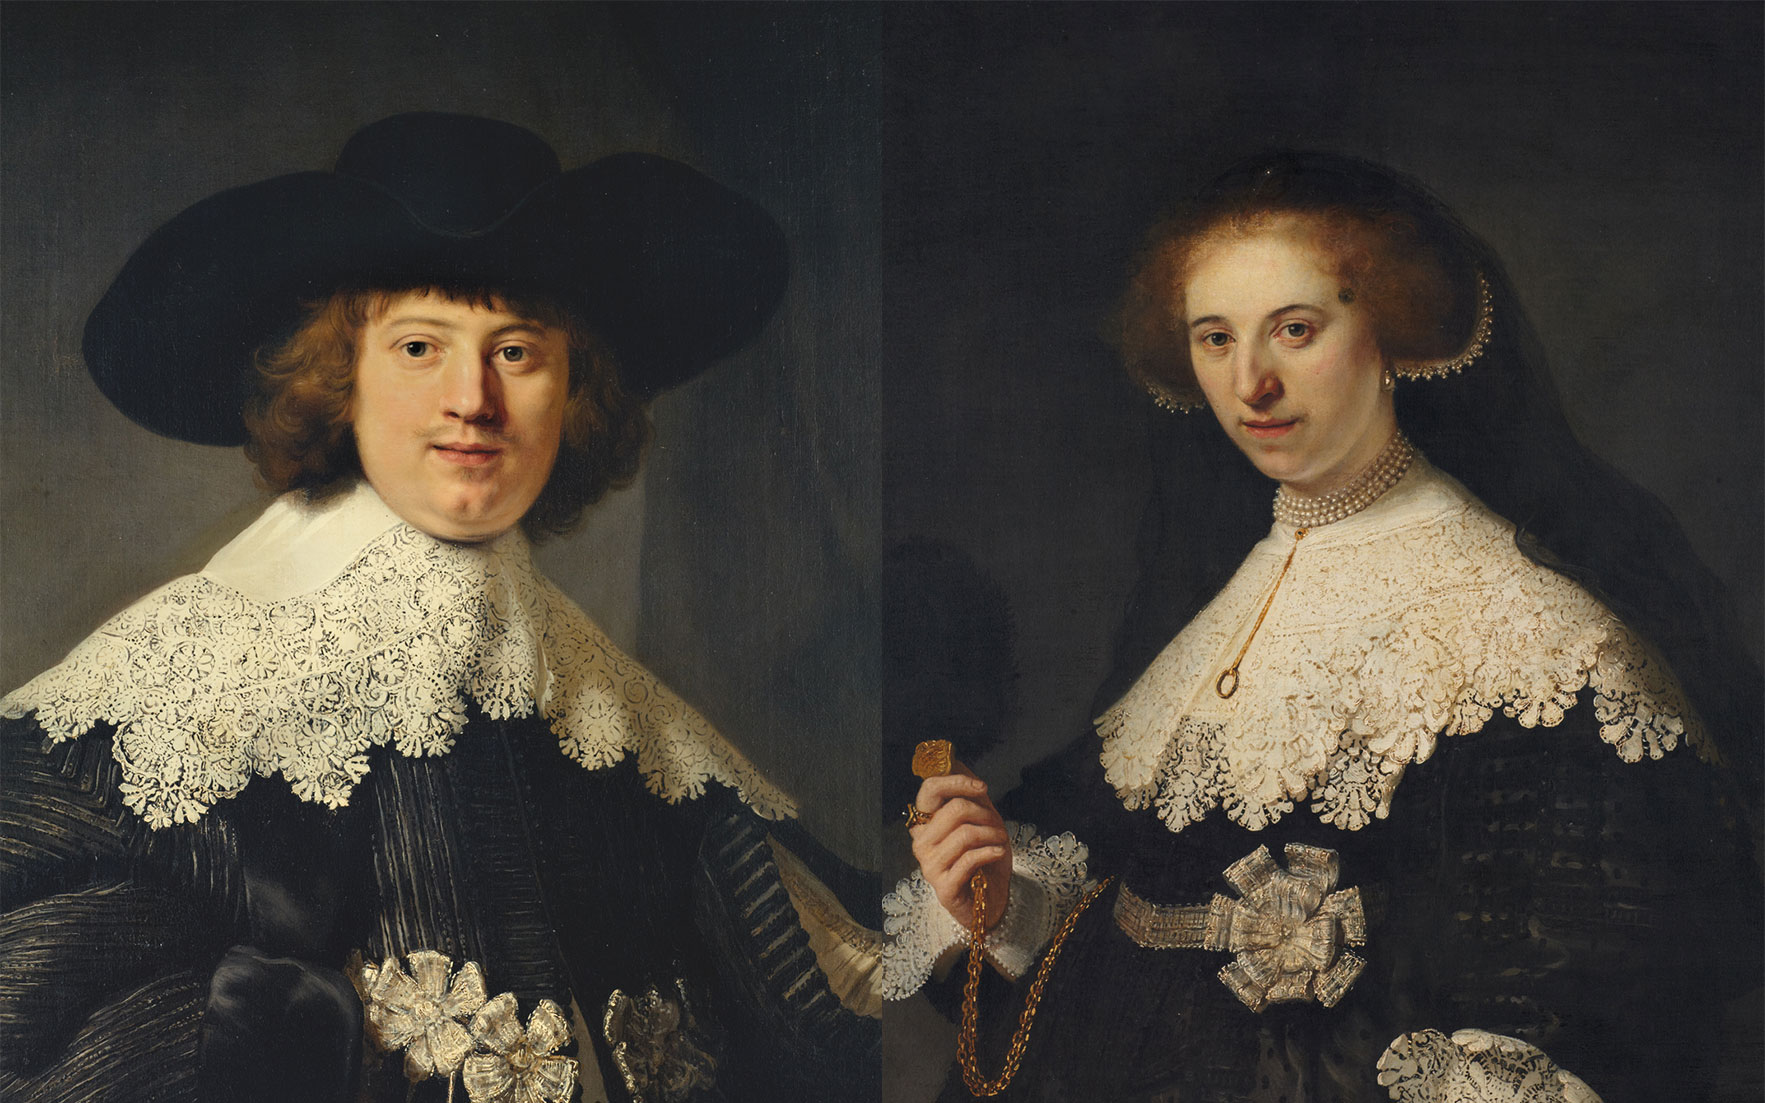 'My highlight of 2016' — Two masterpieces by Rembrandt